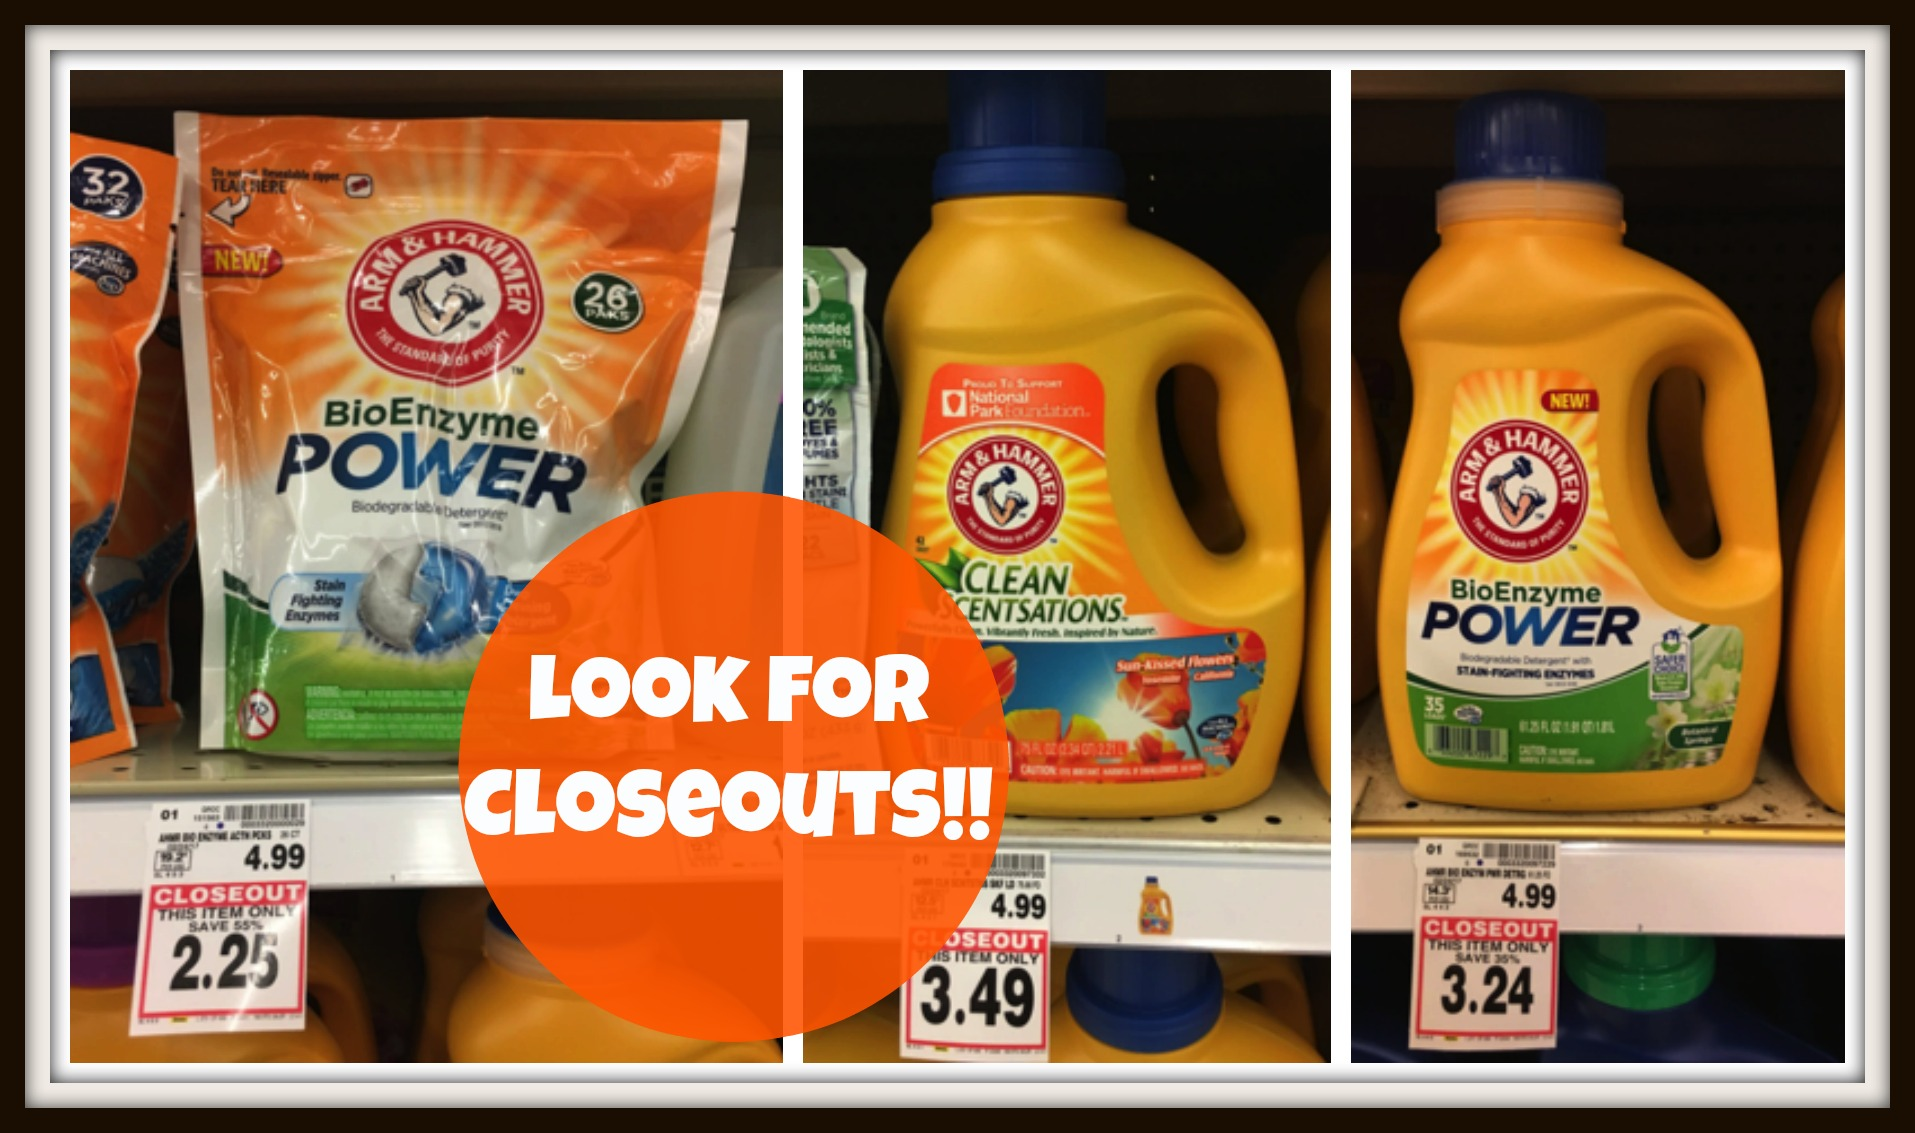 arm & hammer closeouts Image